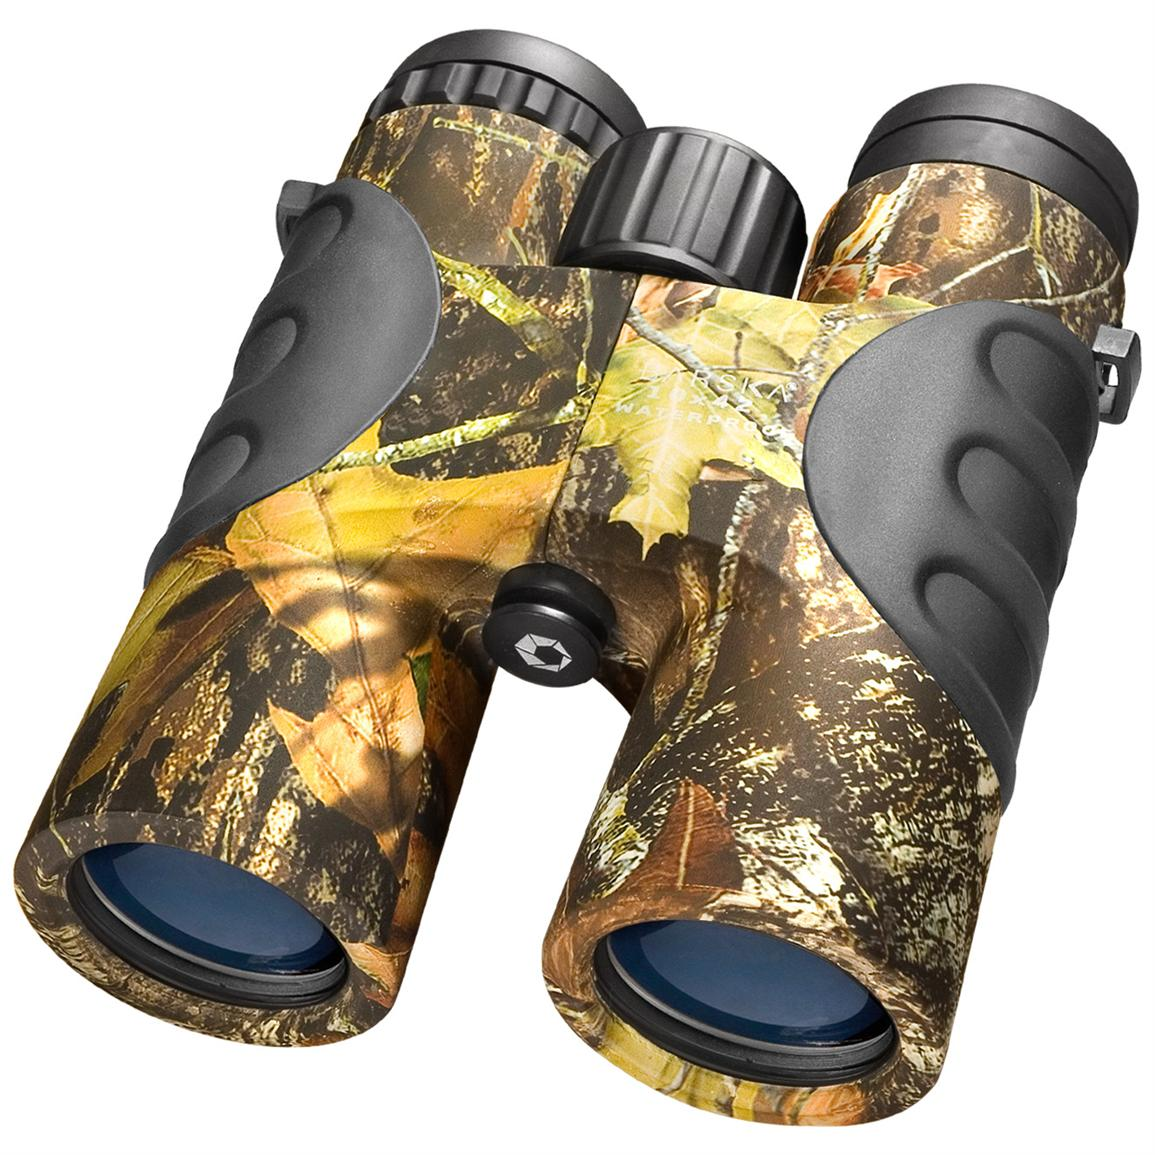 Barska® Camo 10x42 mm Waterproof Atlantic Binoculars